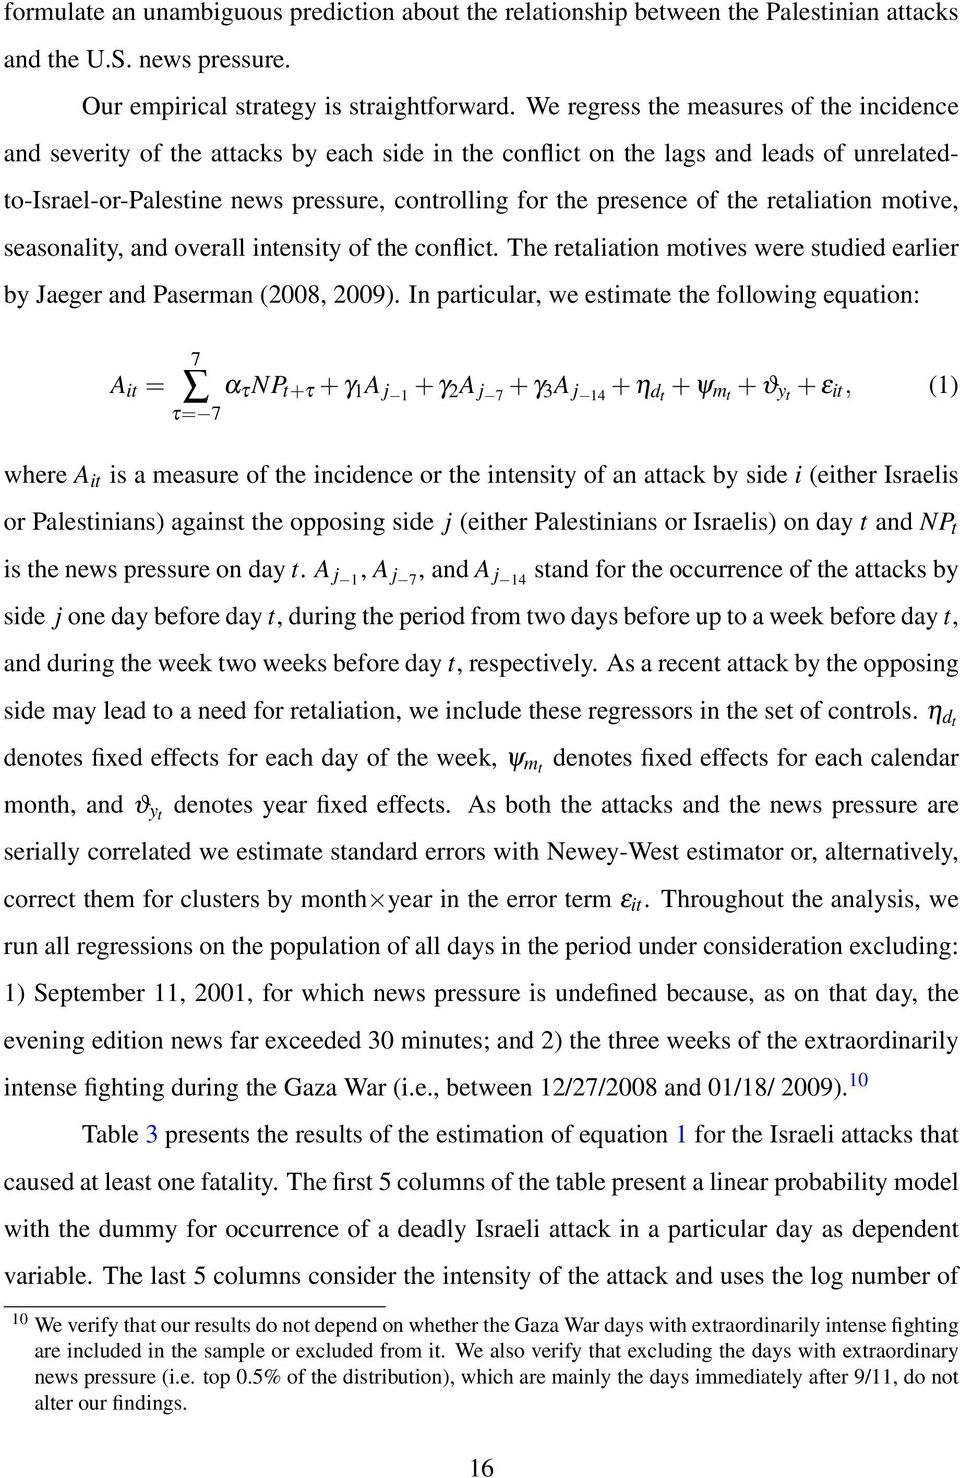 of the retaliation motive, seasonality, and overall intensity of the conflict. The retaliation motives were studied earlier by Jaeger and Paserman (2008, 2009).